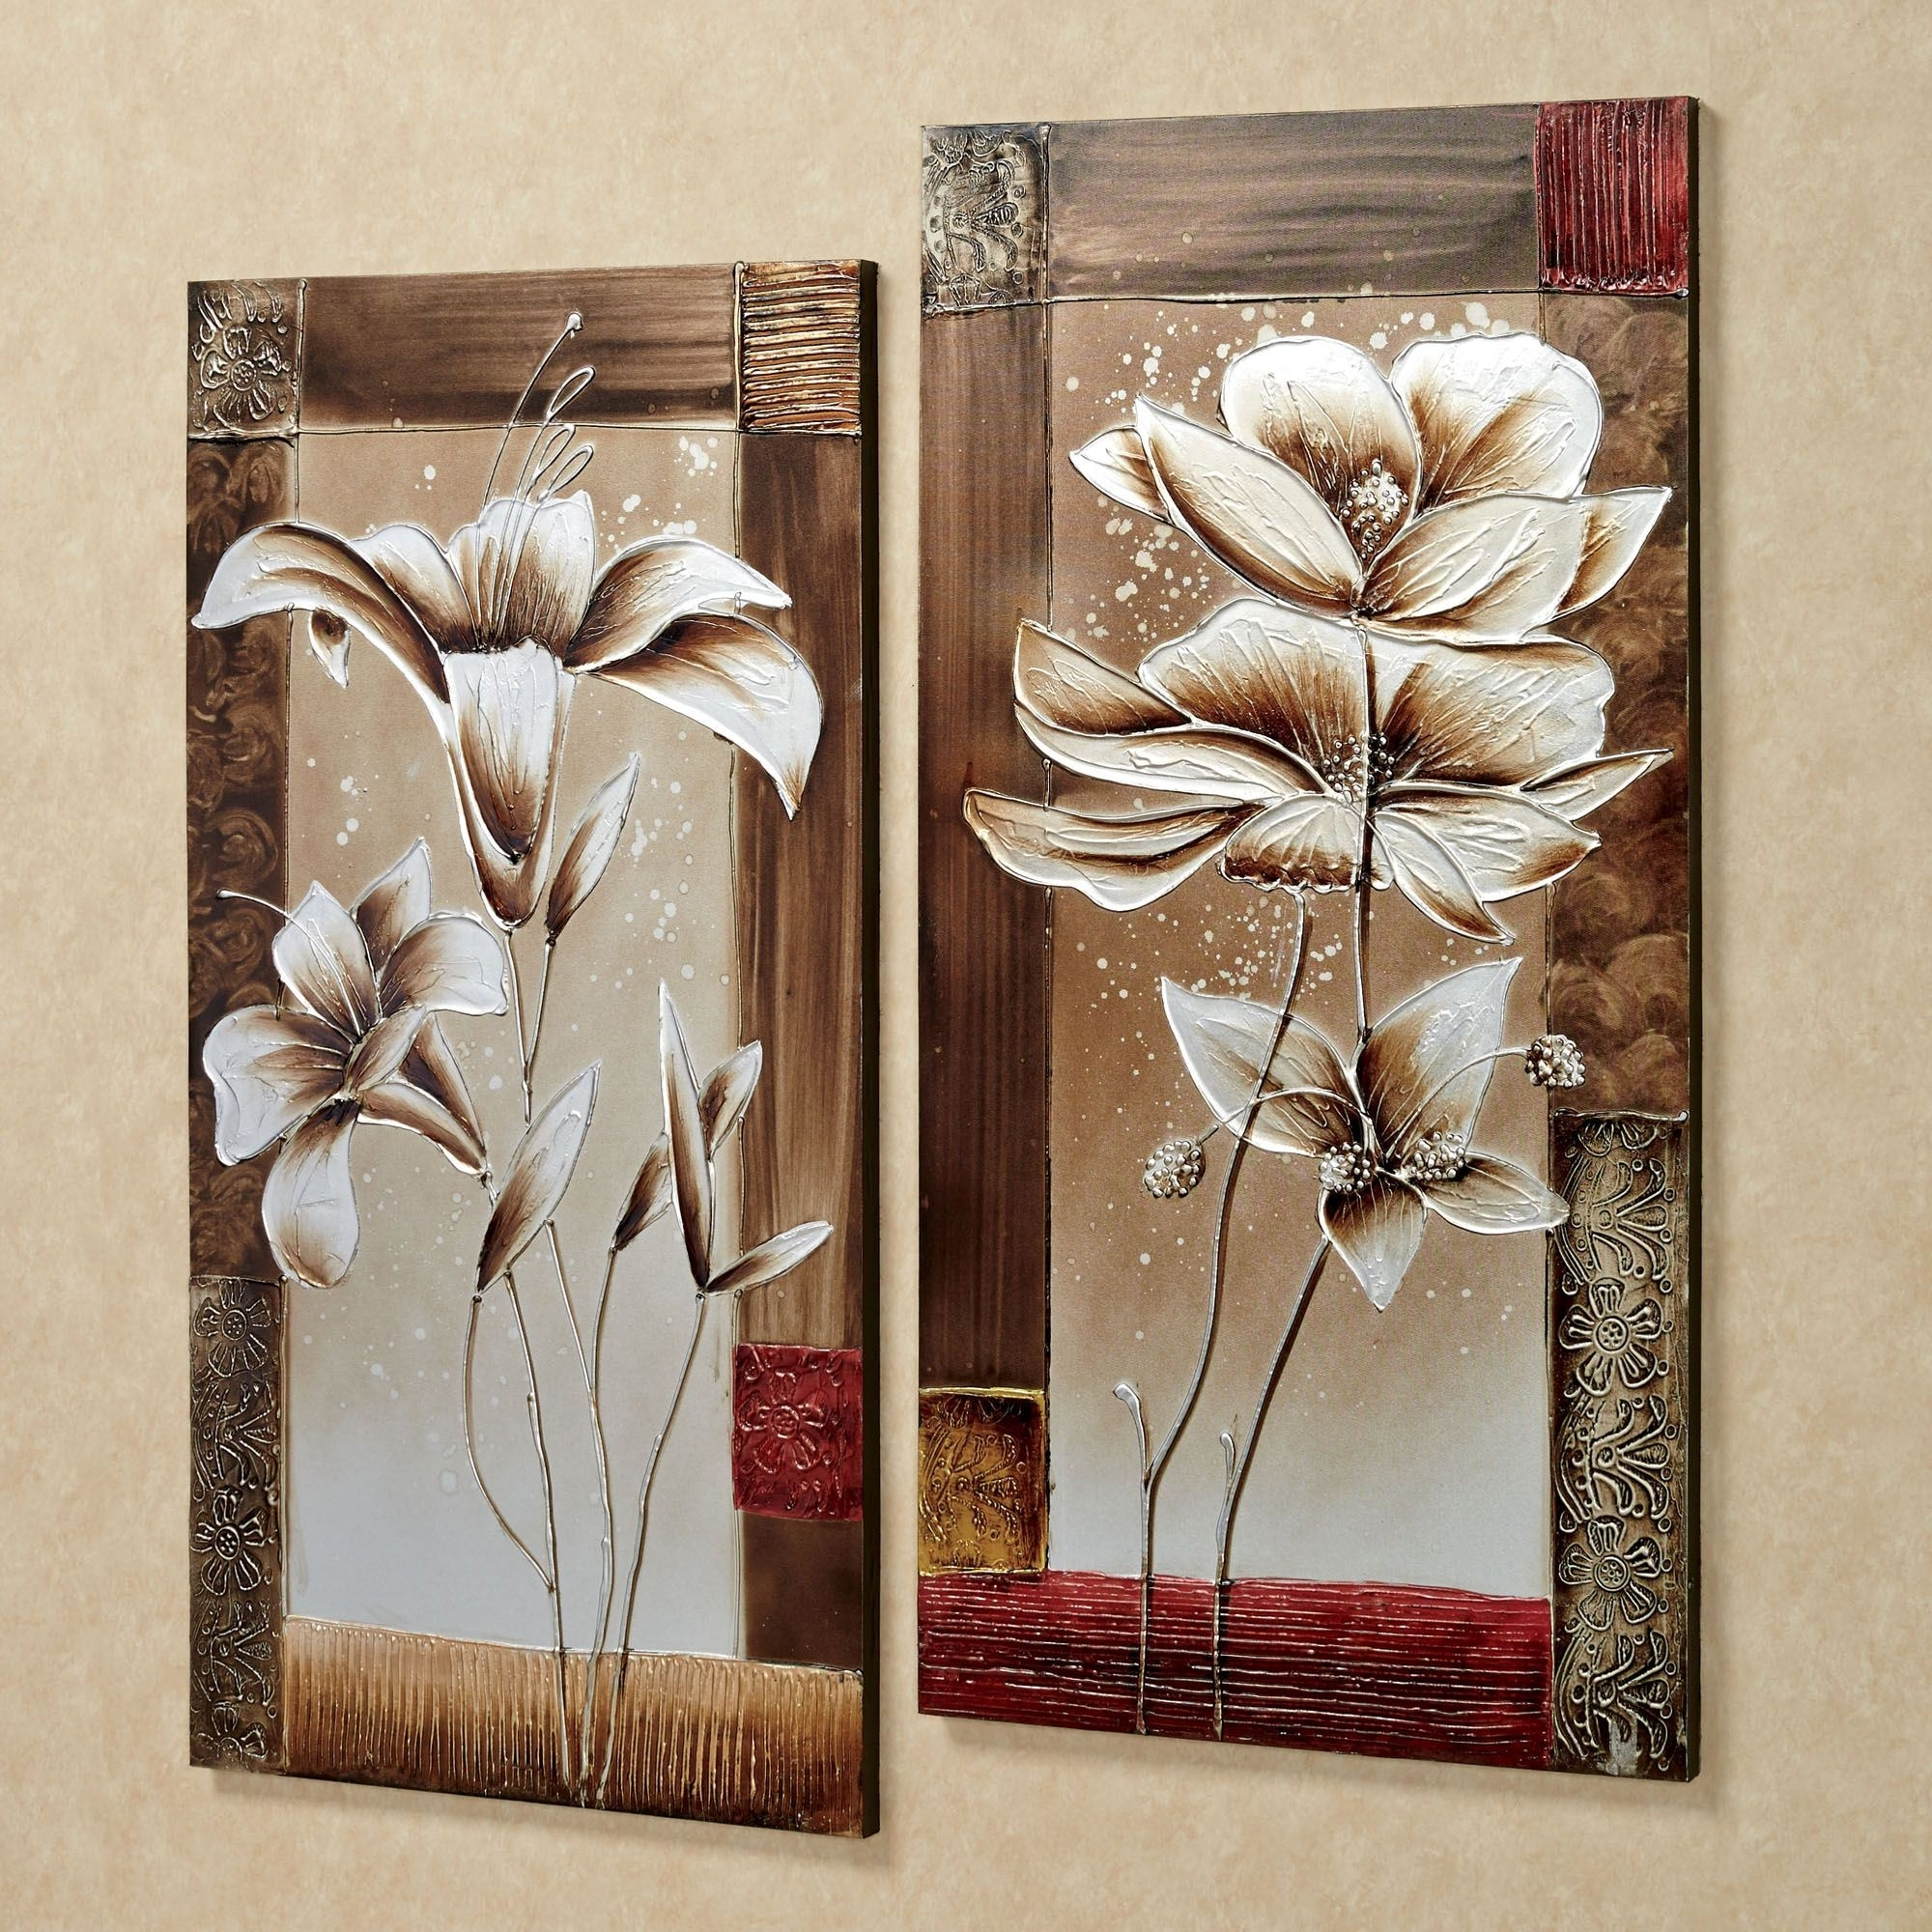 Petals Of Spring Floral Canvas Wall Art Set Within Recent Canvas Wall Art (View 13 of 15)